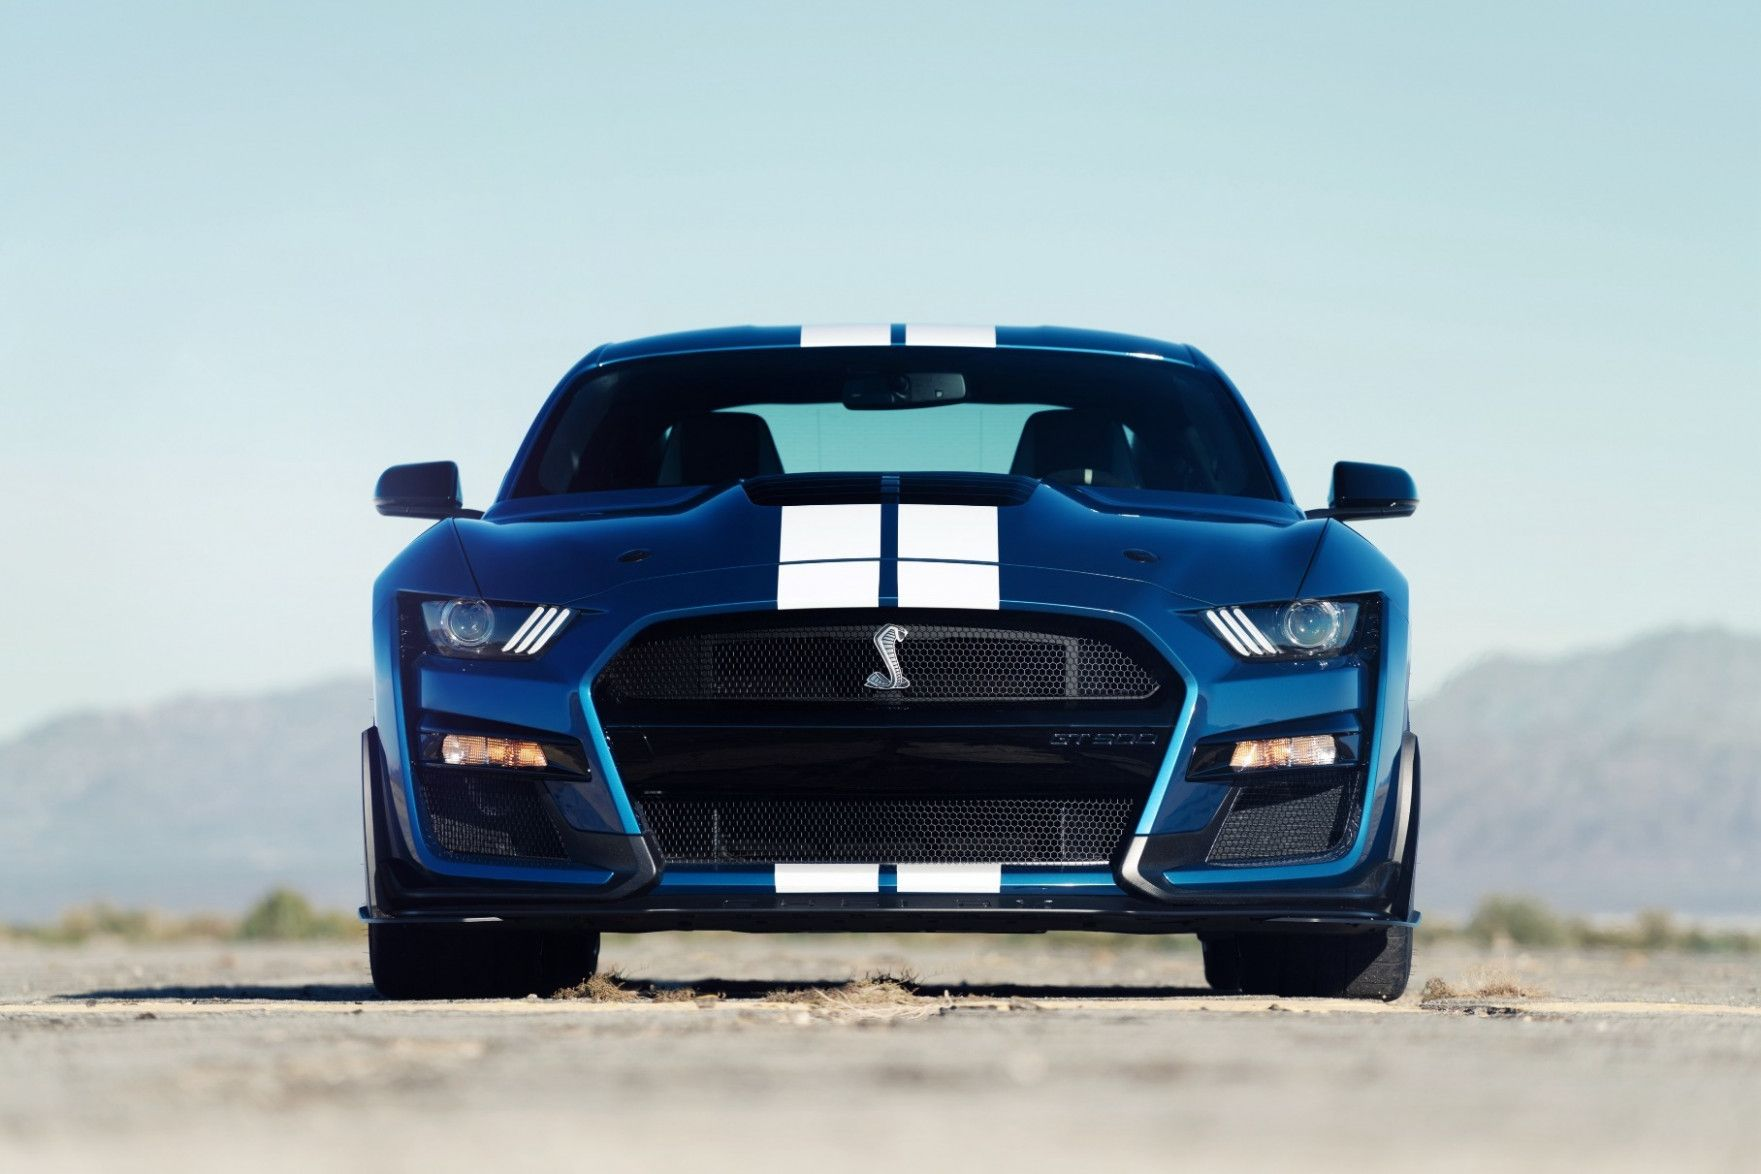 2020 Ford Shelby Gt500 Barrett Jackson New Review Di 2020